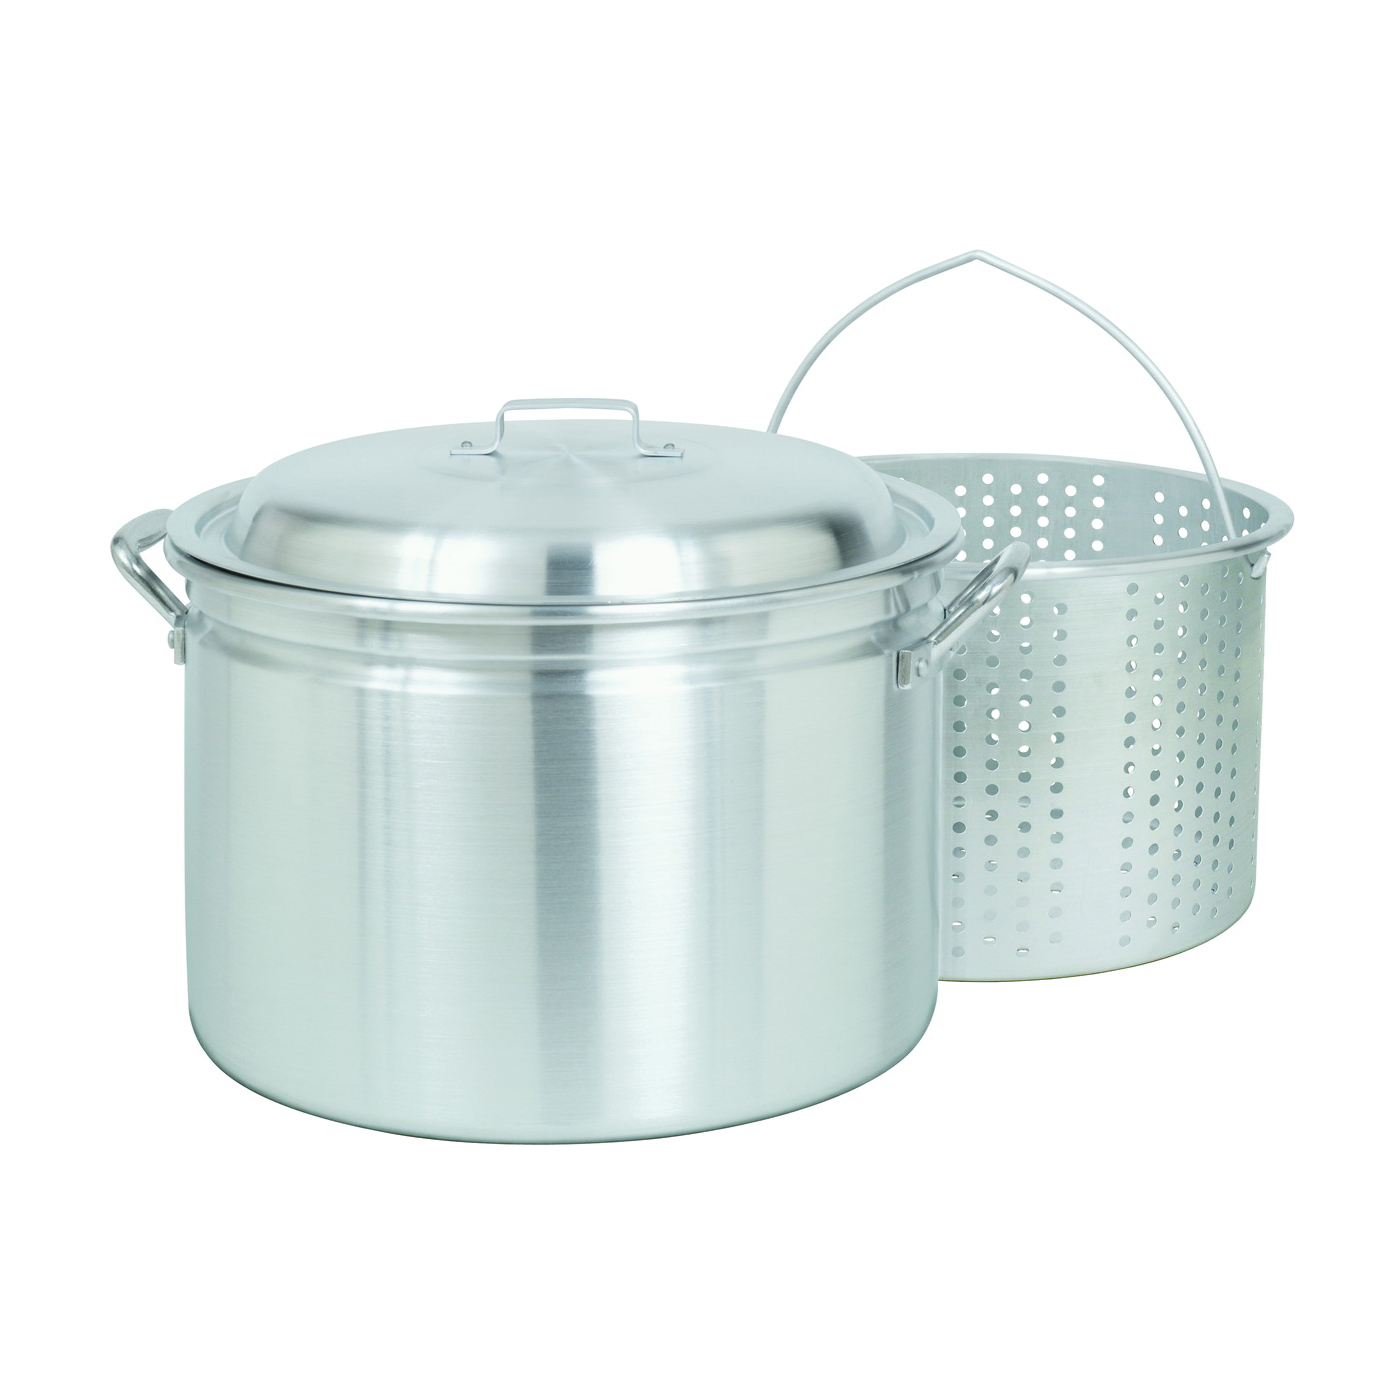 Picture of Bayou Classic 4024 Stock Pot with Basket, 24 qt Capacity, Aluminum